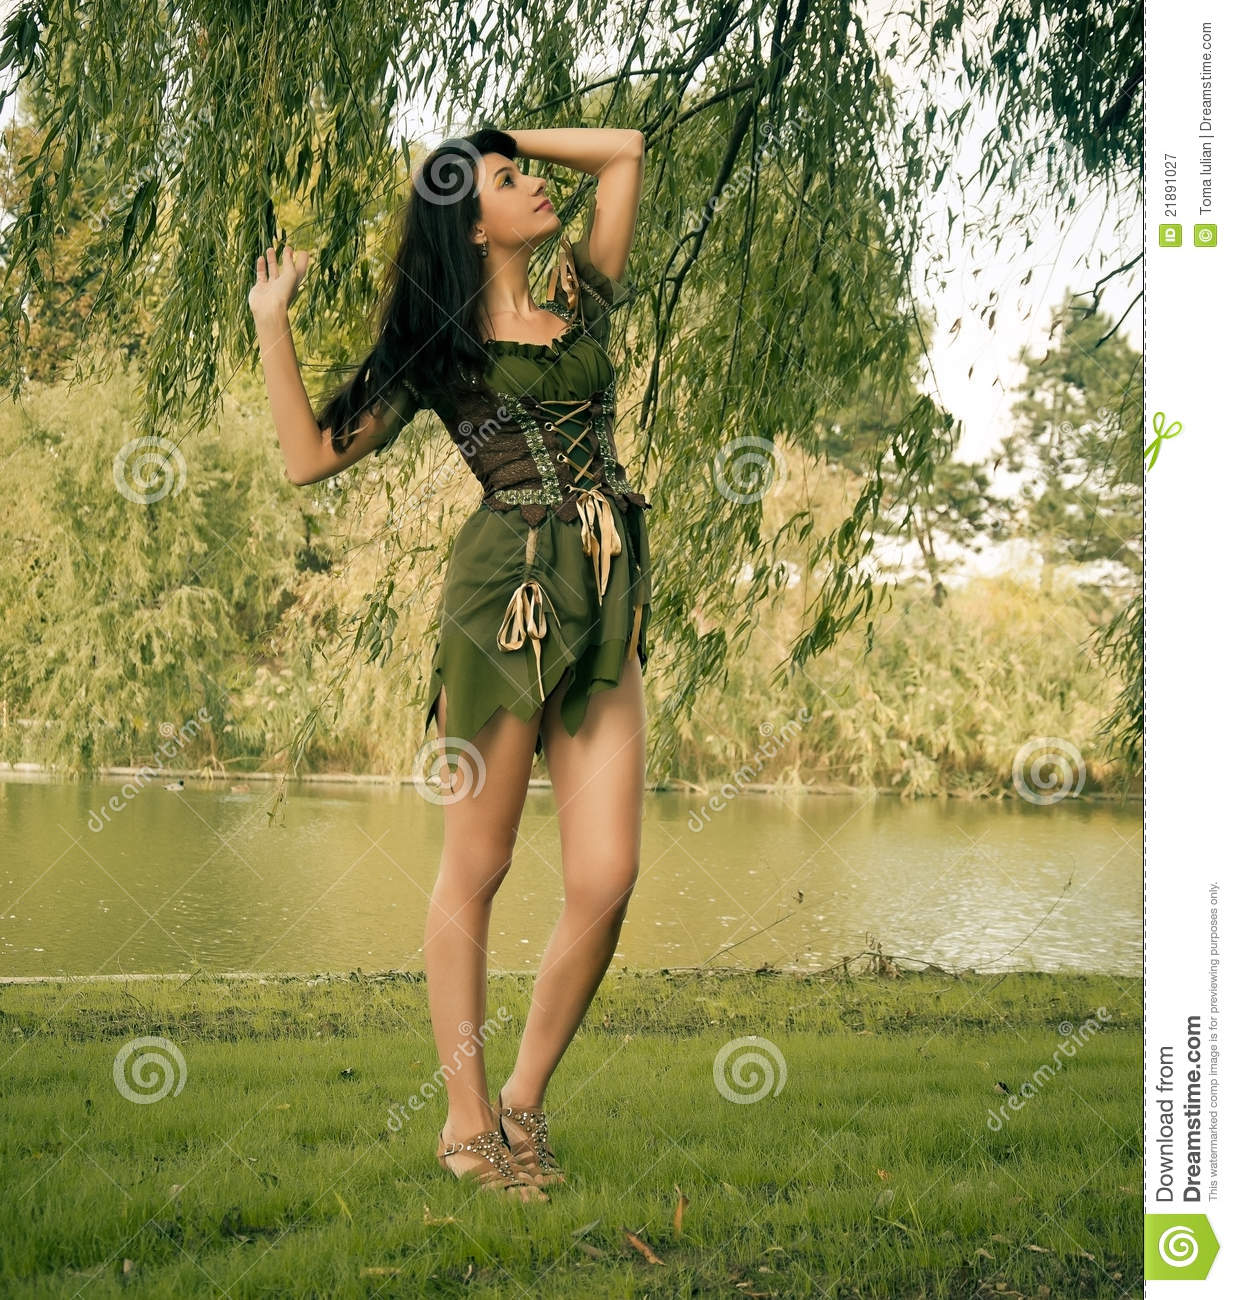 teen enjoying nature stock image image of nature girl